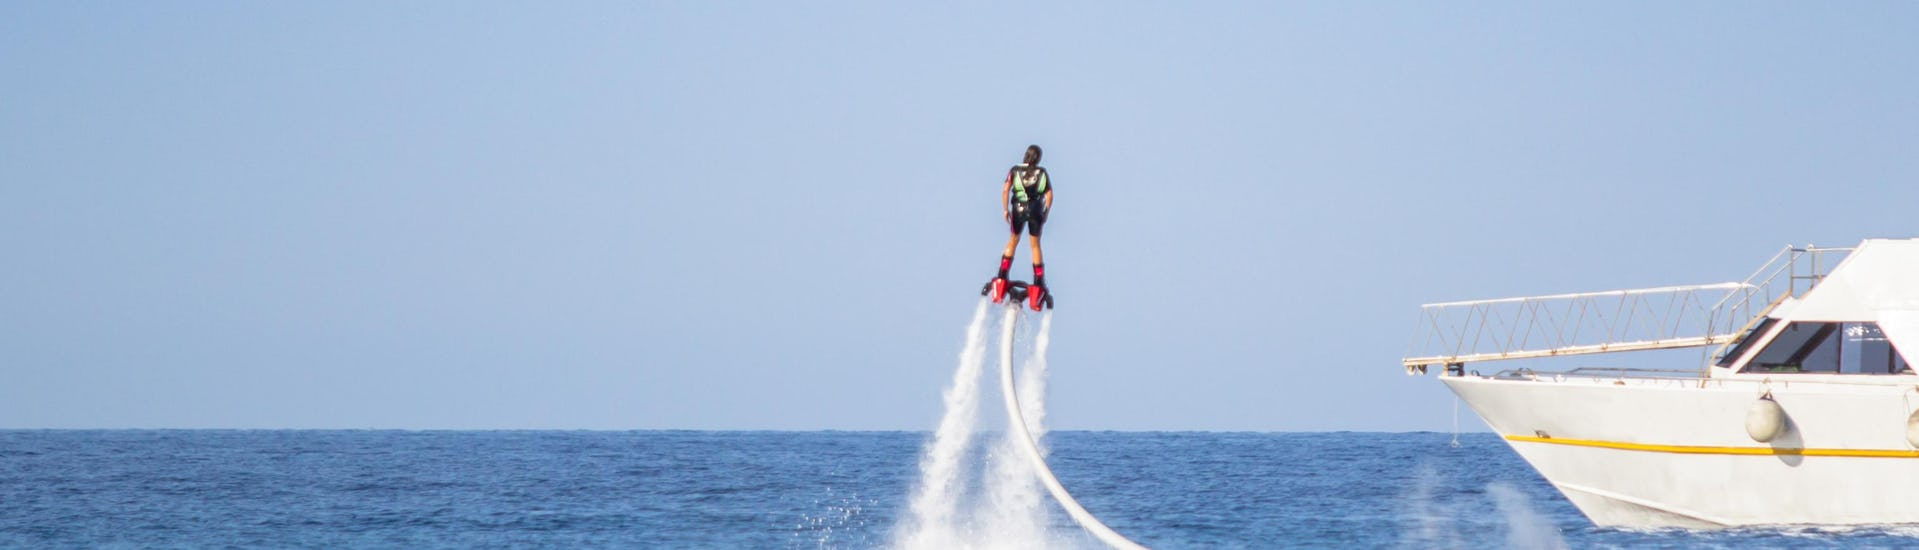 Man flyboarding on the ocean